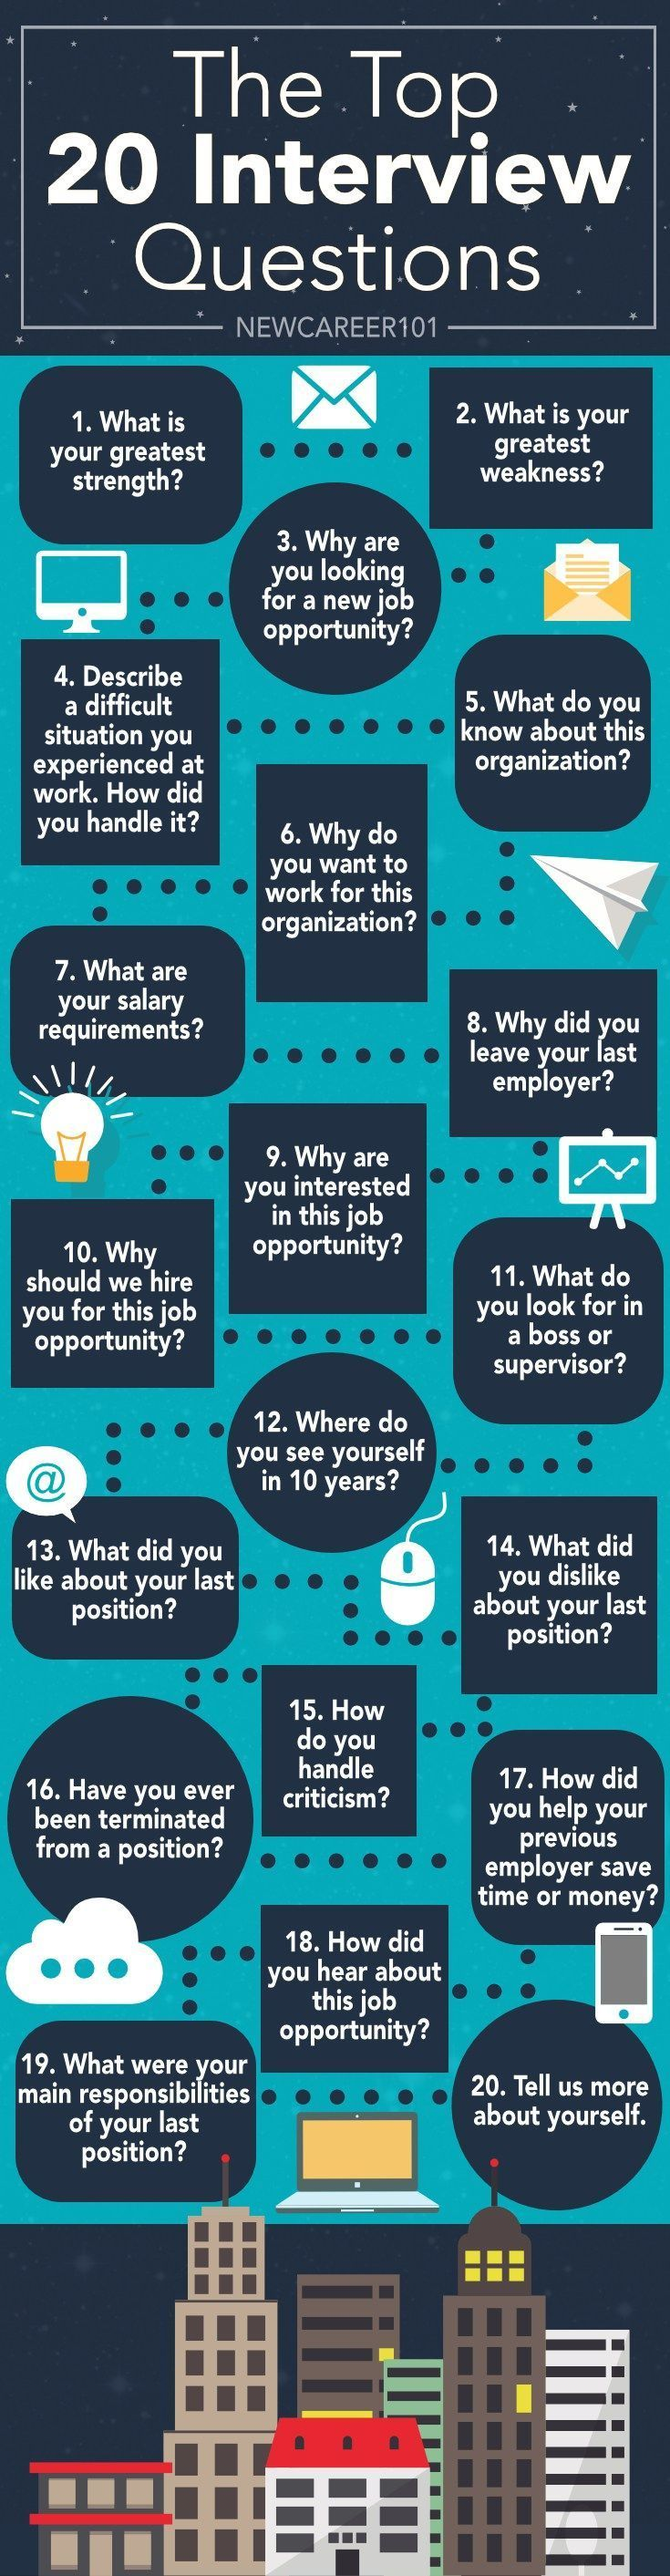 Photo of The Top 20 Interview Questions: Infographic – The Collective Mill